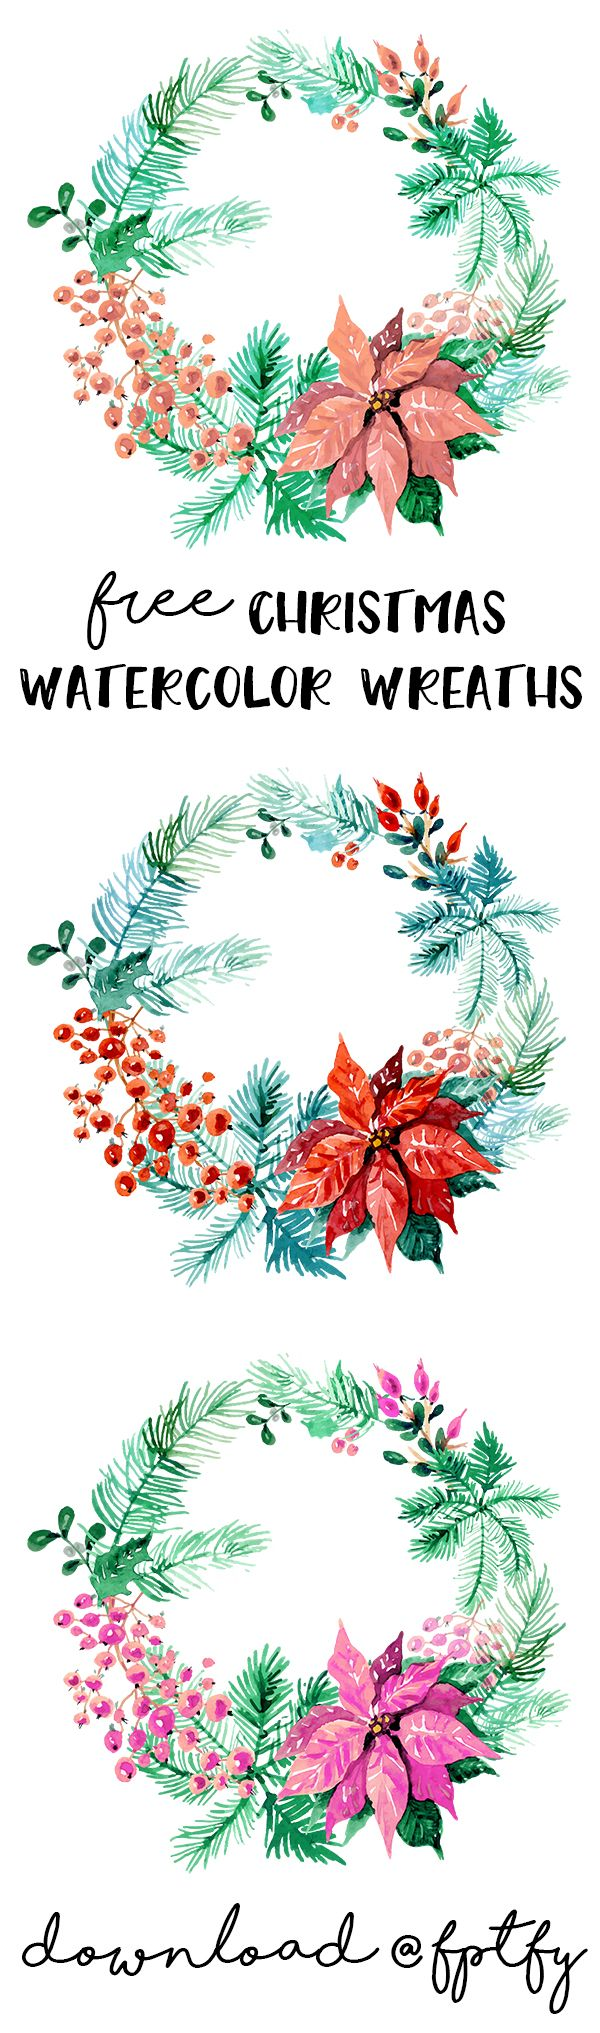 Free Christmas Watercolor Wreaths Wreath Watercolor Christmas